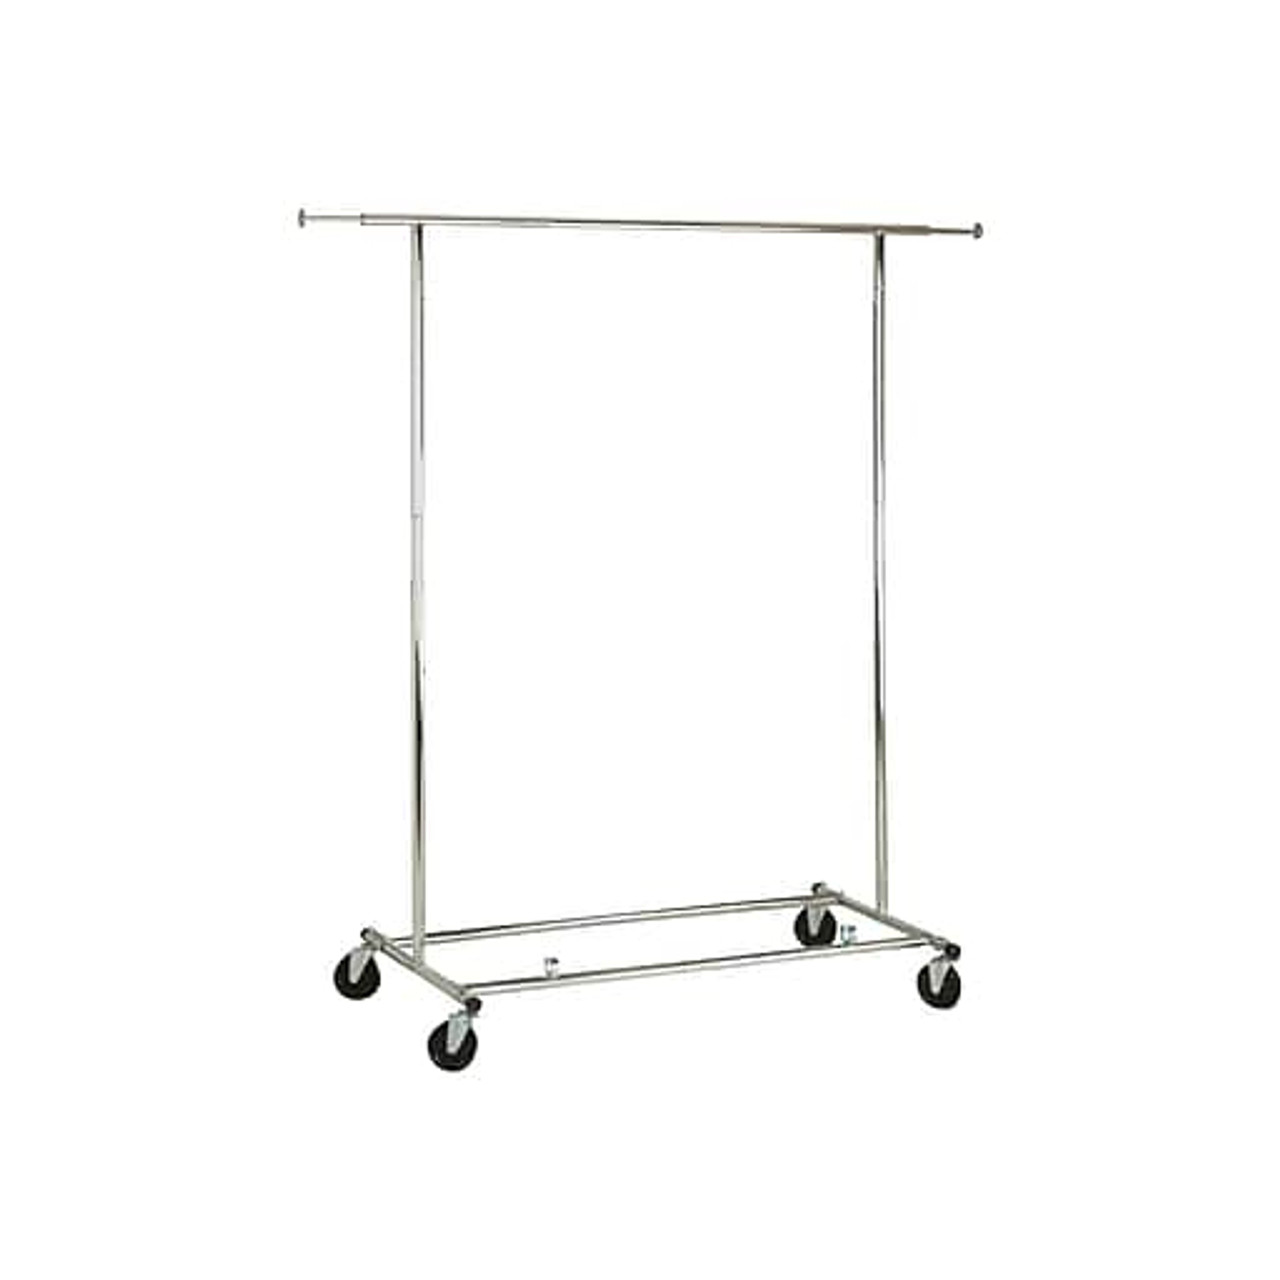 Rental - Garment Rack (Display)